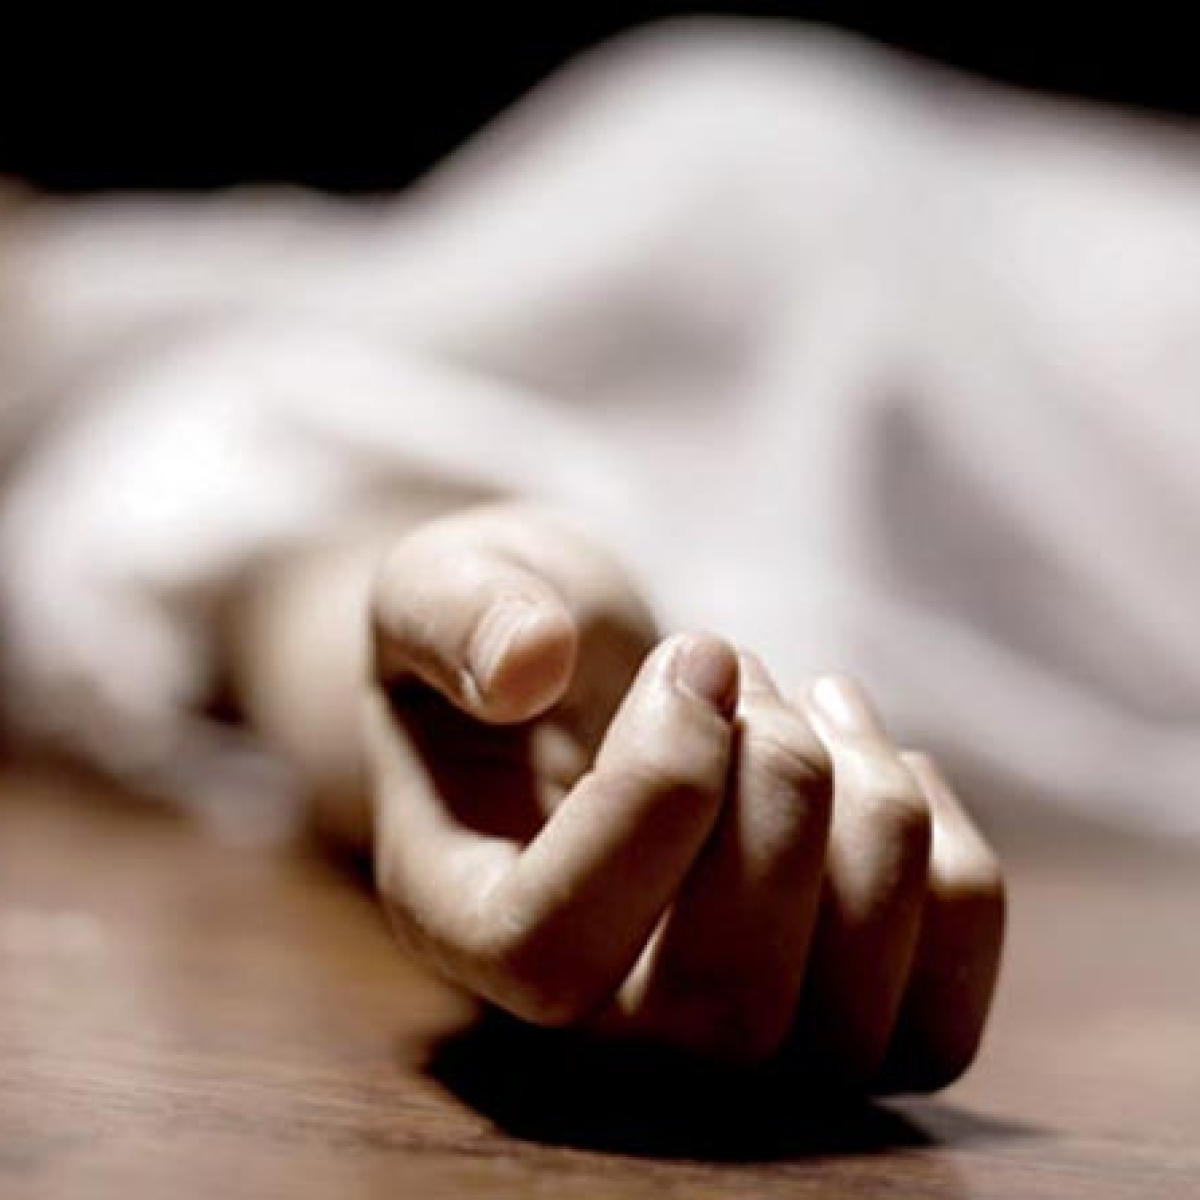 Uttar Pradesh woman inflicts 101 cuts on sister-in-law in exorcism to cure ailing father